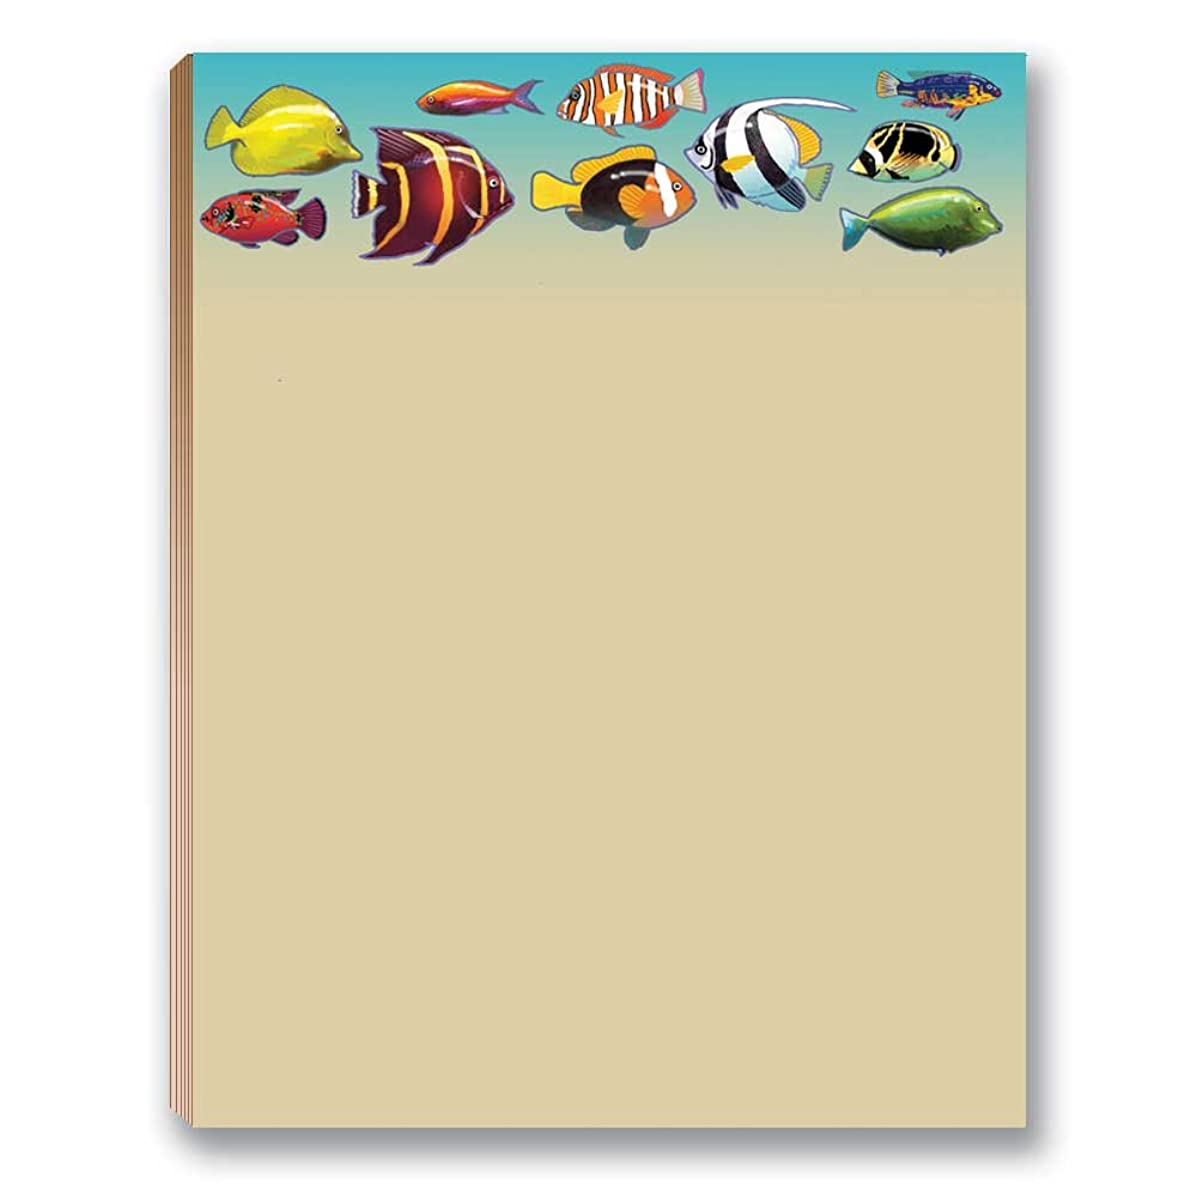 Tropical Fish Note Pad - Set of 2 Notepads